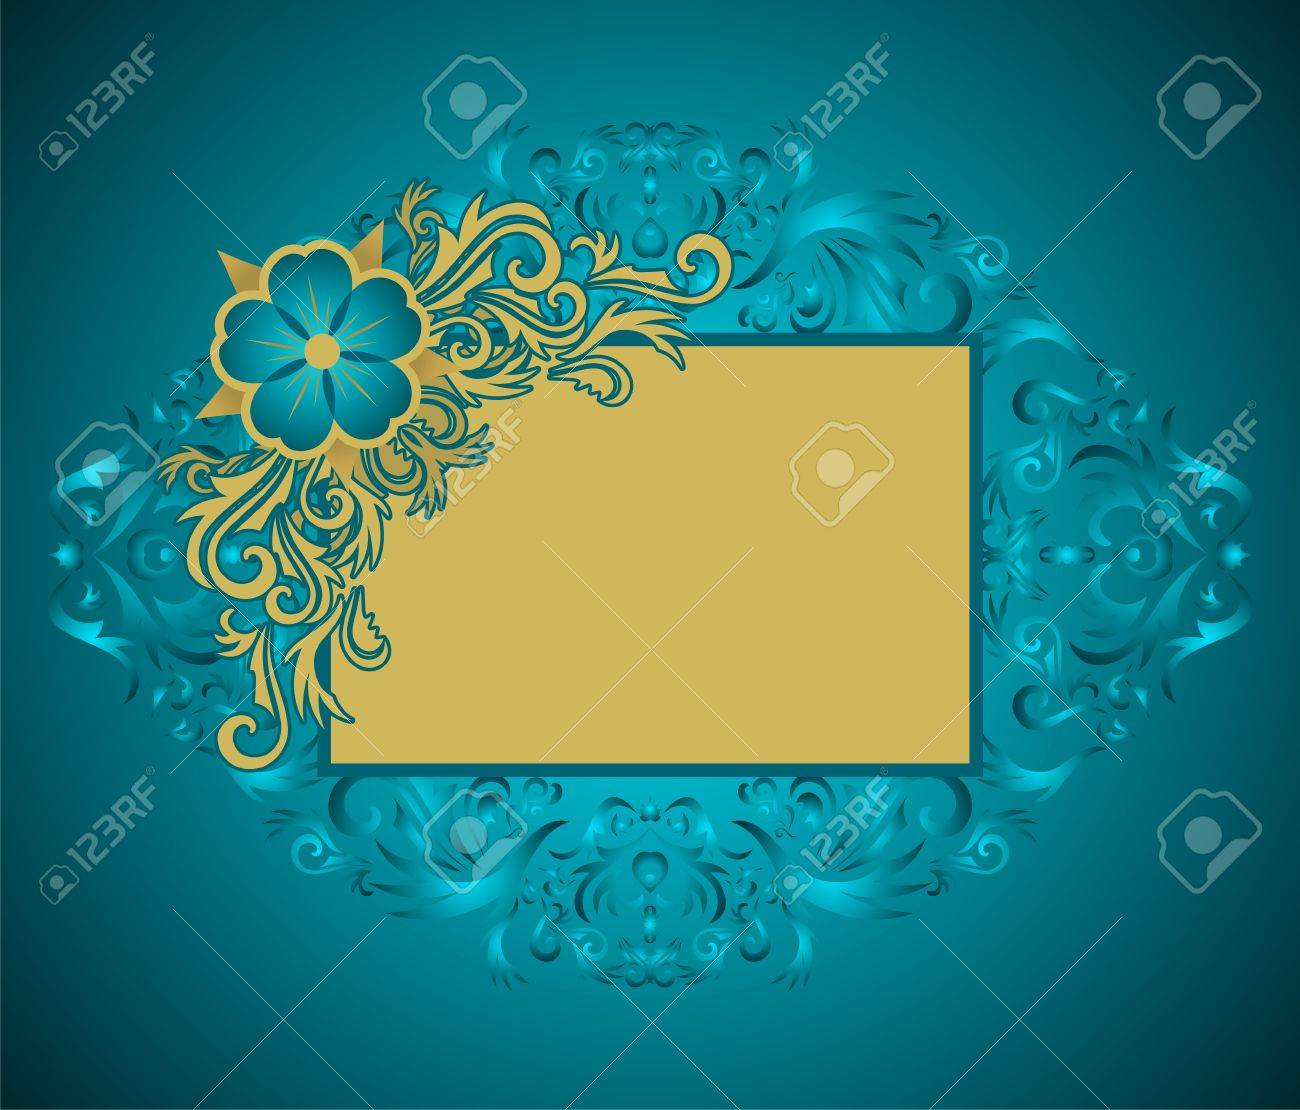 Golden floral frame with place for your text. Stock Vector - 5696741